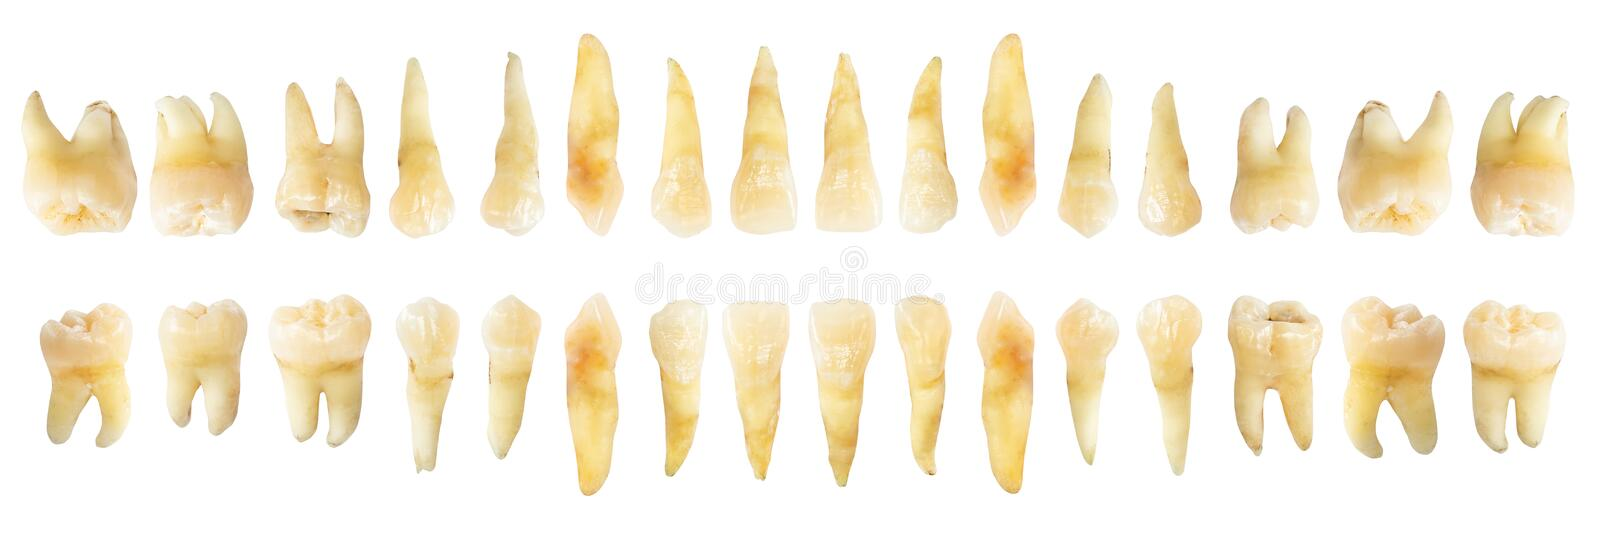 Tooth diagram photography . Real teeth chart . front horizontal view . isolated white background royalty free stock images